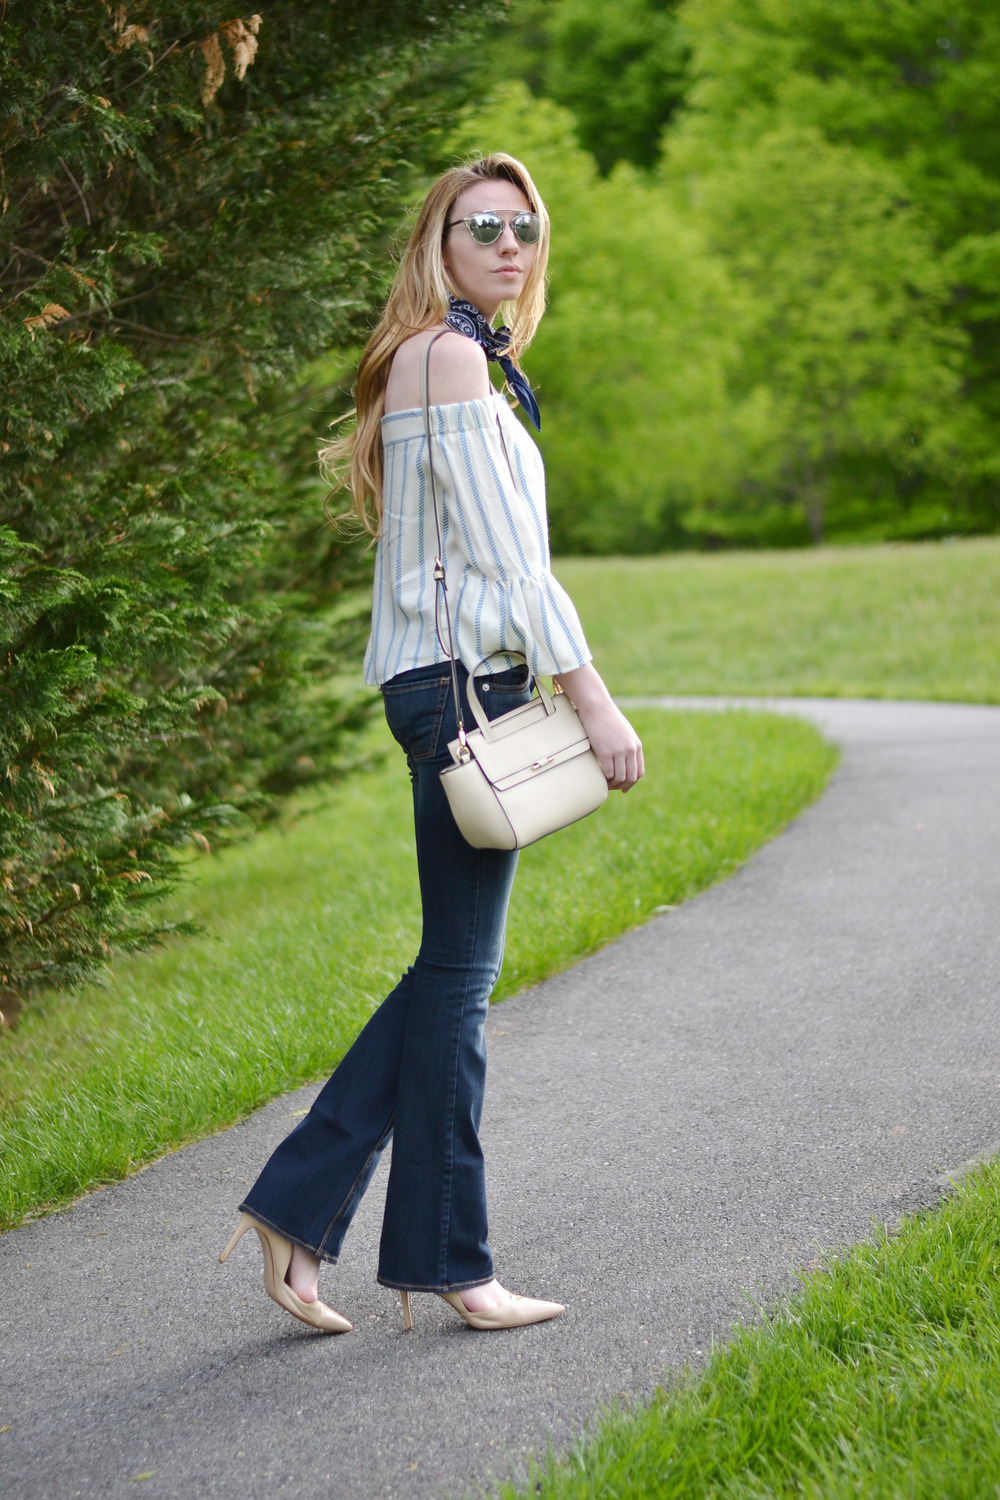 Off-The-Shoulder Top & Flare Denim & Bandana Necktie (via Chic Now)